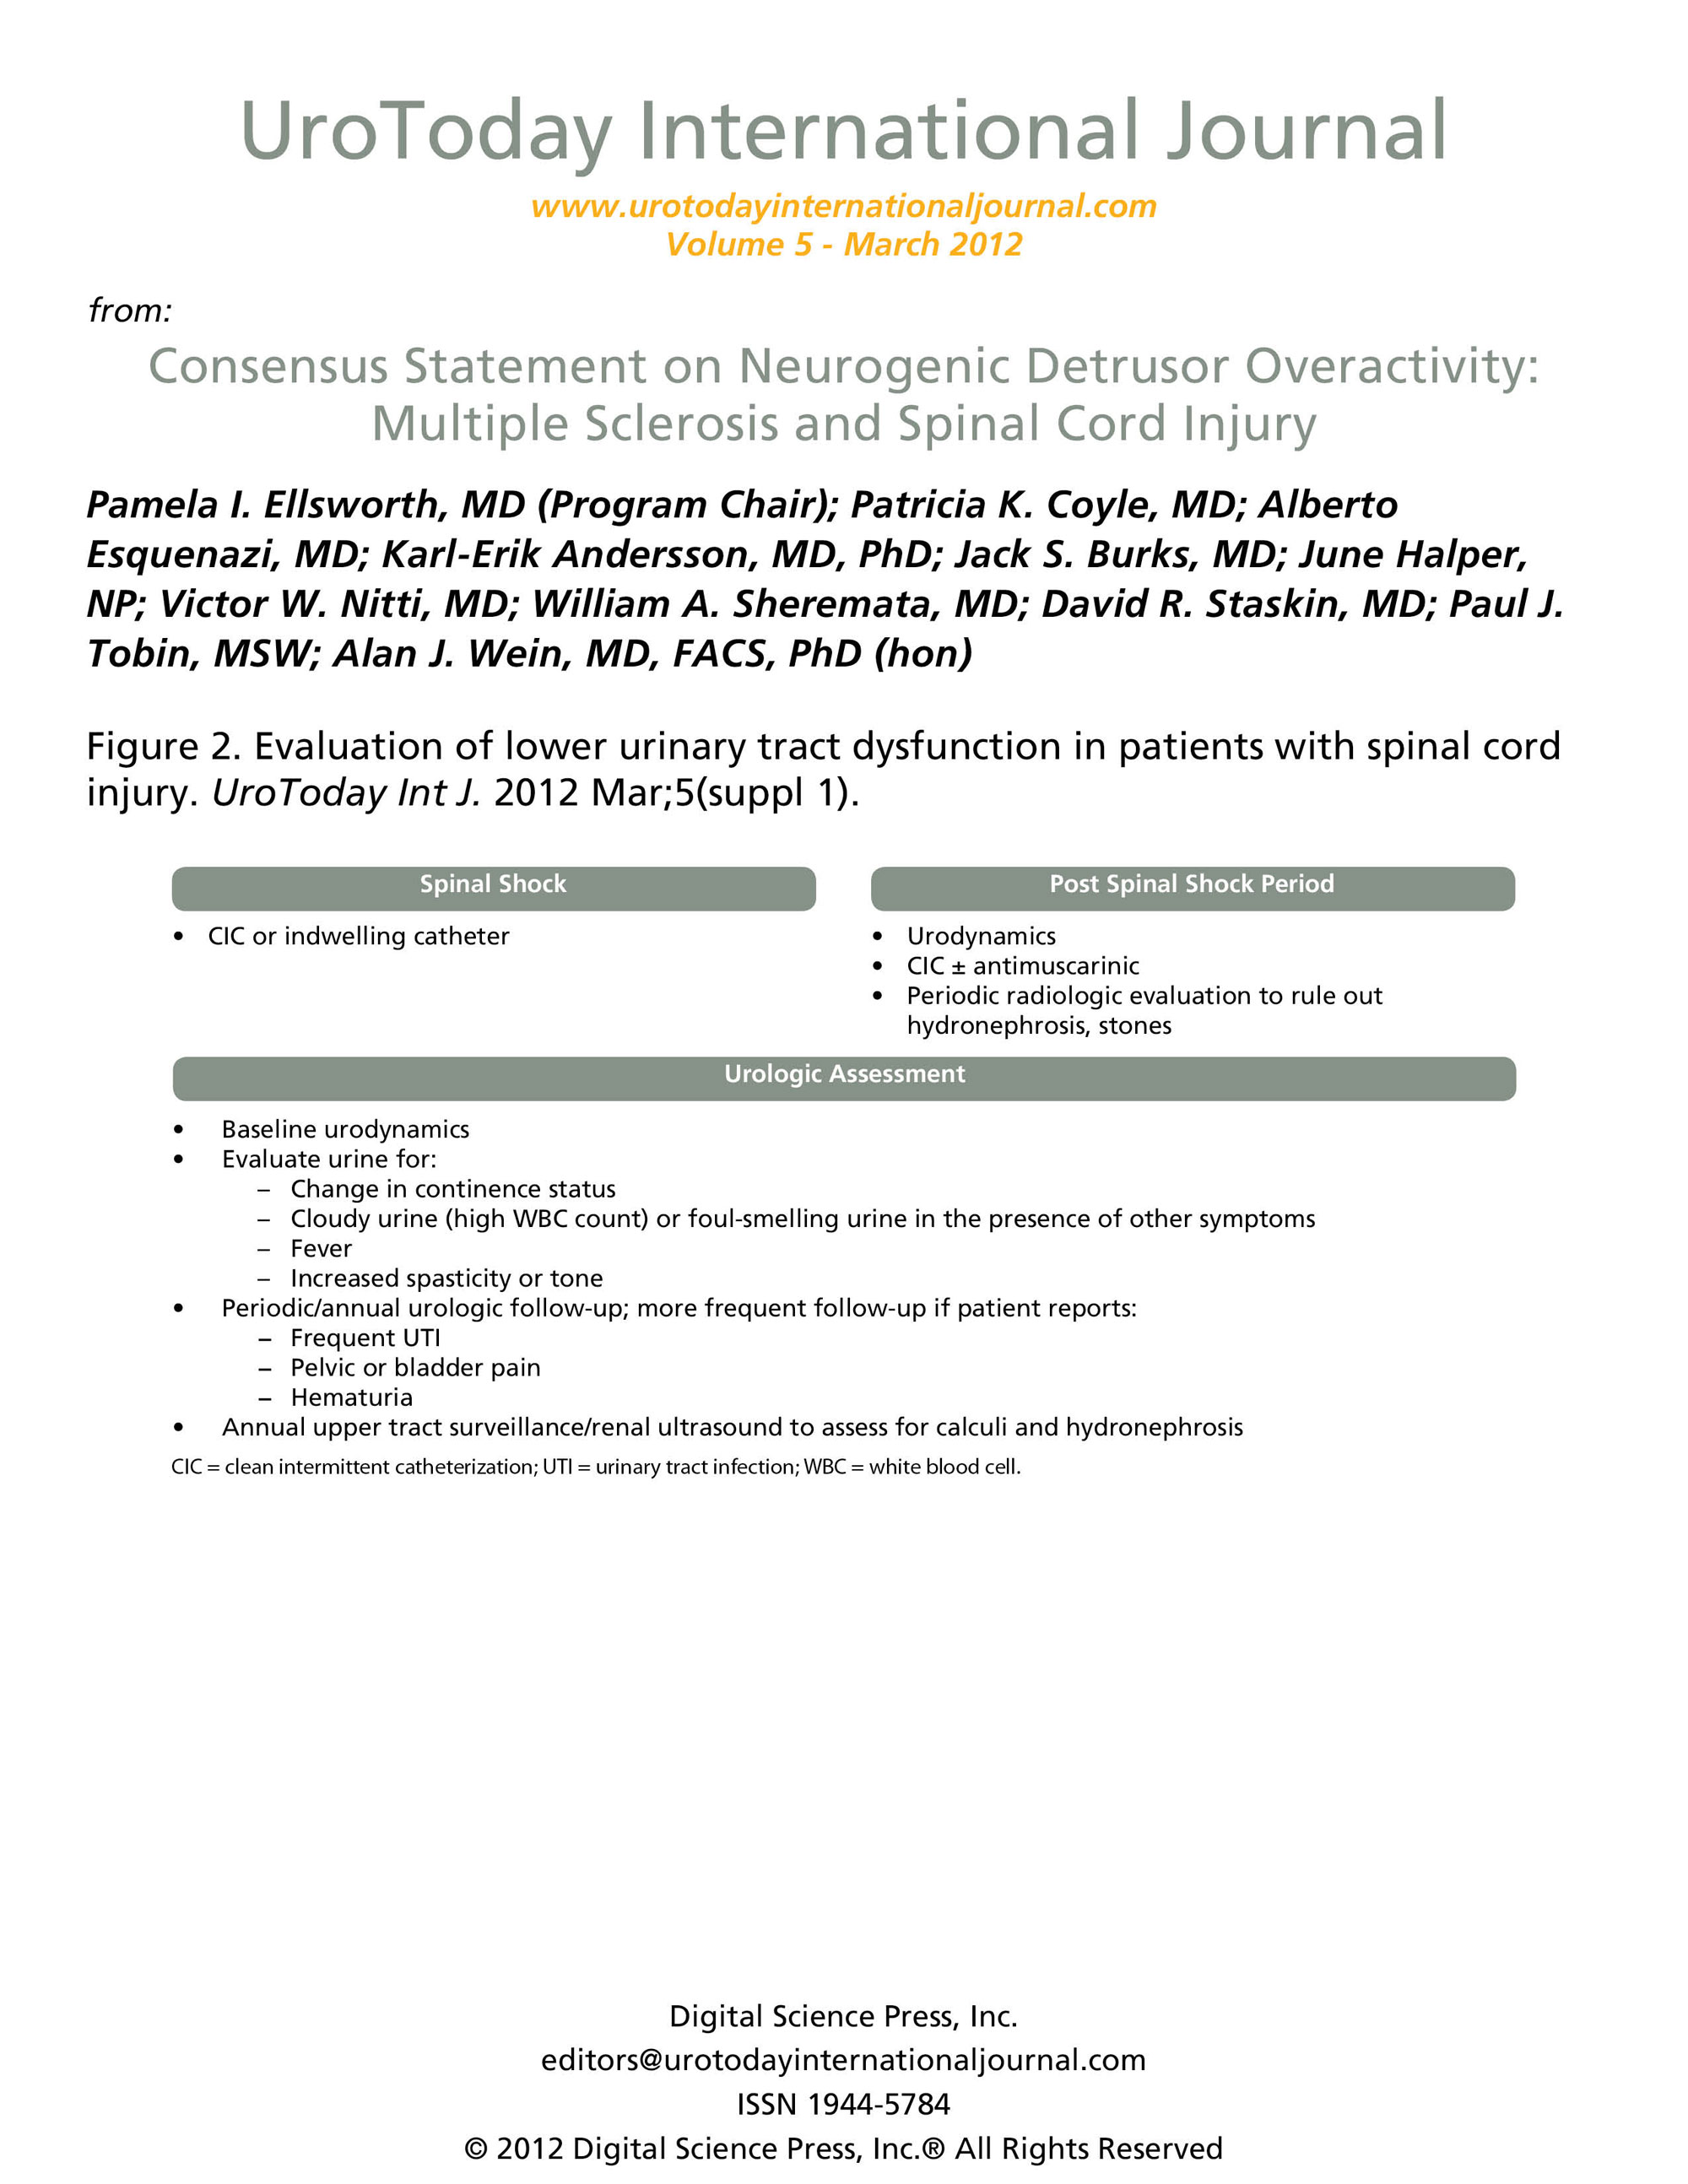 Cme Chairman Director Chair Dc 355 In The Multidisciplinary Care Of Patients Urologist Should Assume Management Lower Urinary Tract Dysfunction Essential Components